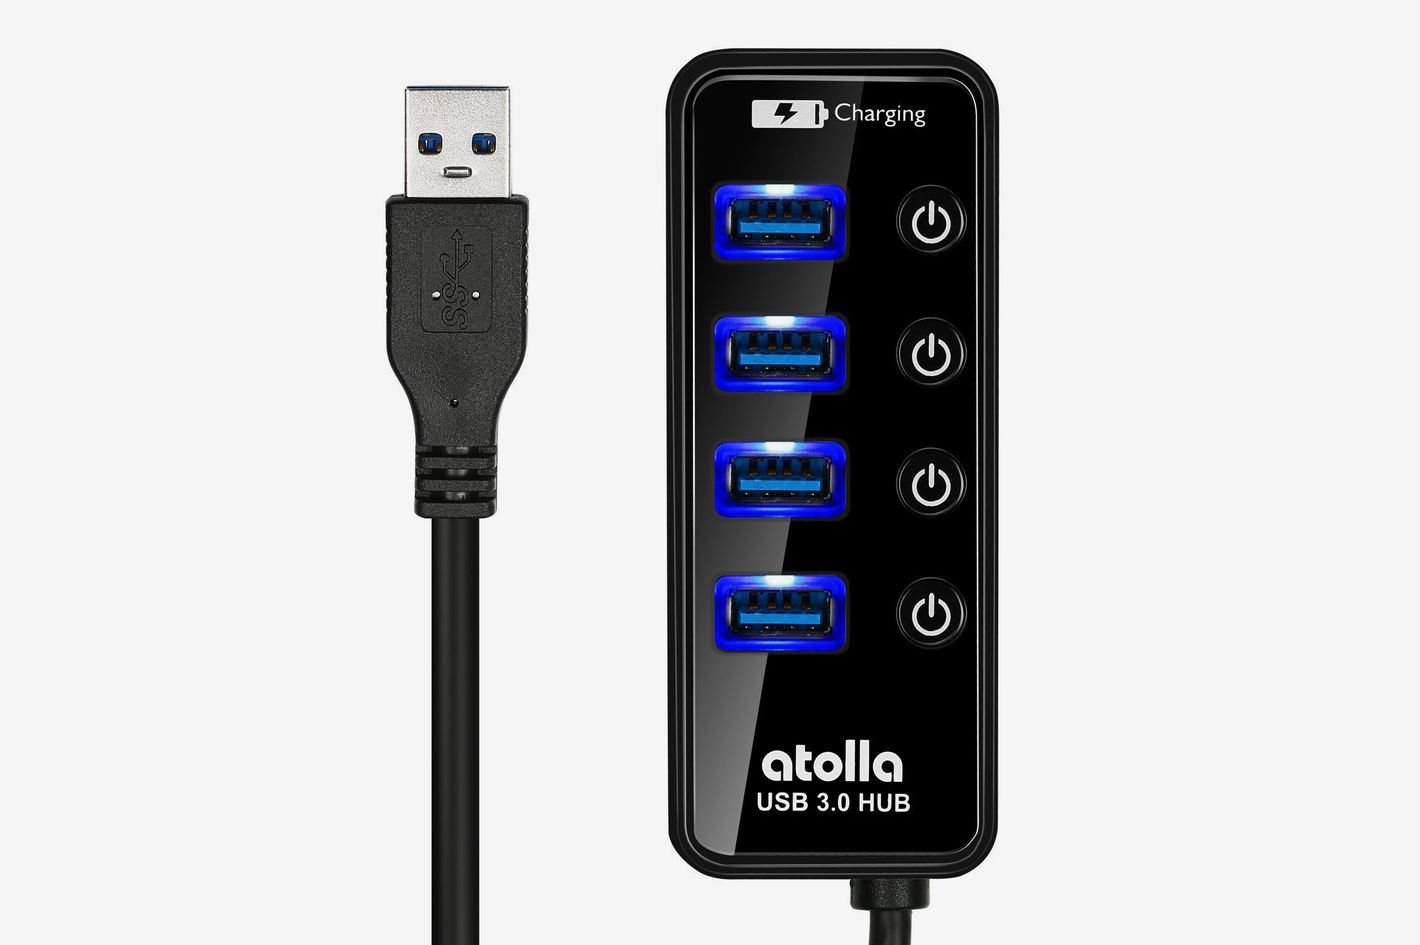 Atolla 4 Ports Super Speed USB 3 Hub Splitter With On Off Switch With 1 USB Charging Port